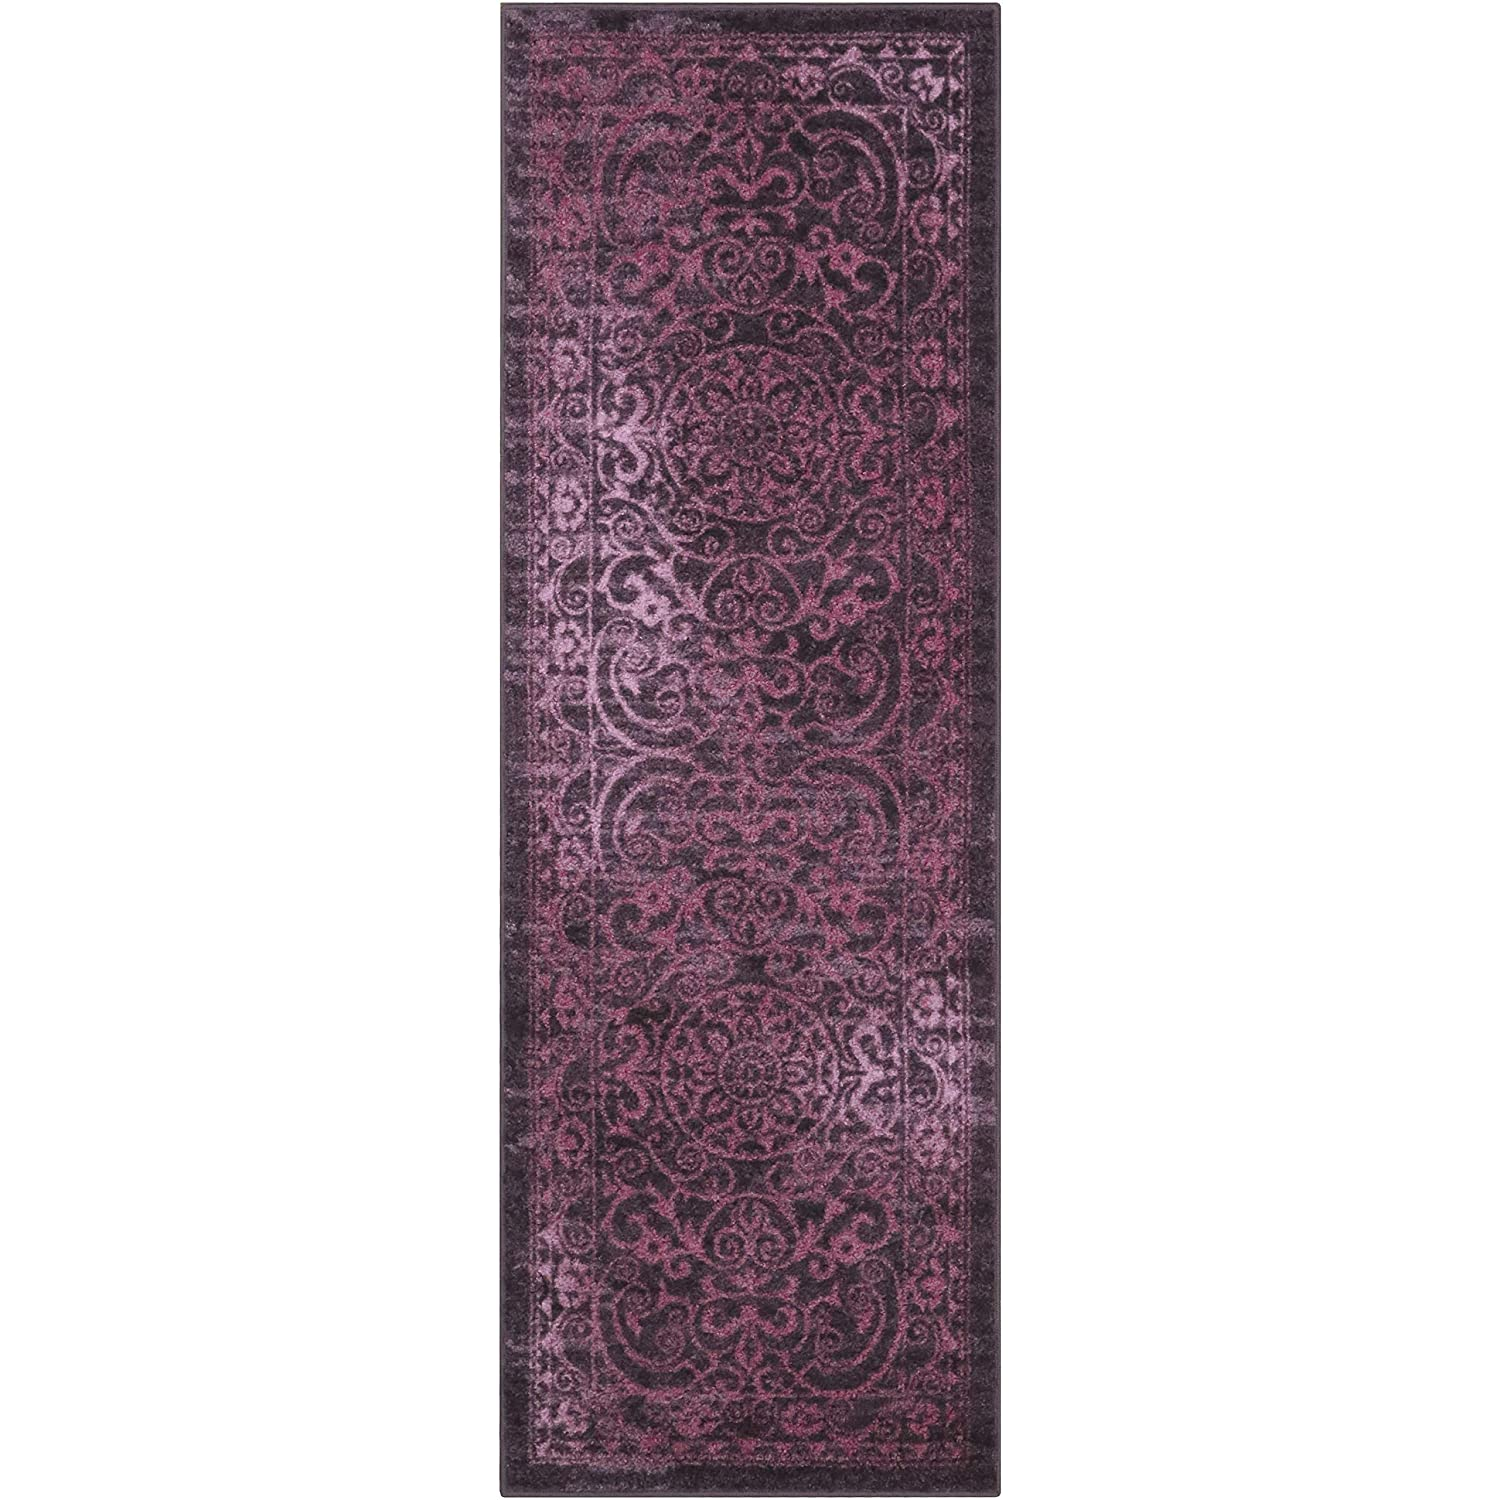 Maples Rugs AG4055708 Pelham 2' x 6' Non Skid Hallway Carpet Entry Rugs Runners [Made in USA] for for Kitchen and Entryway Wineberry Red